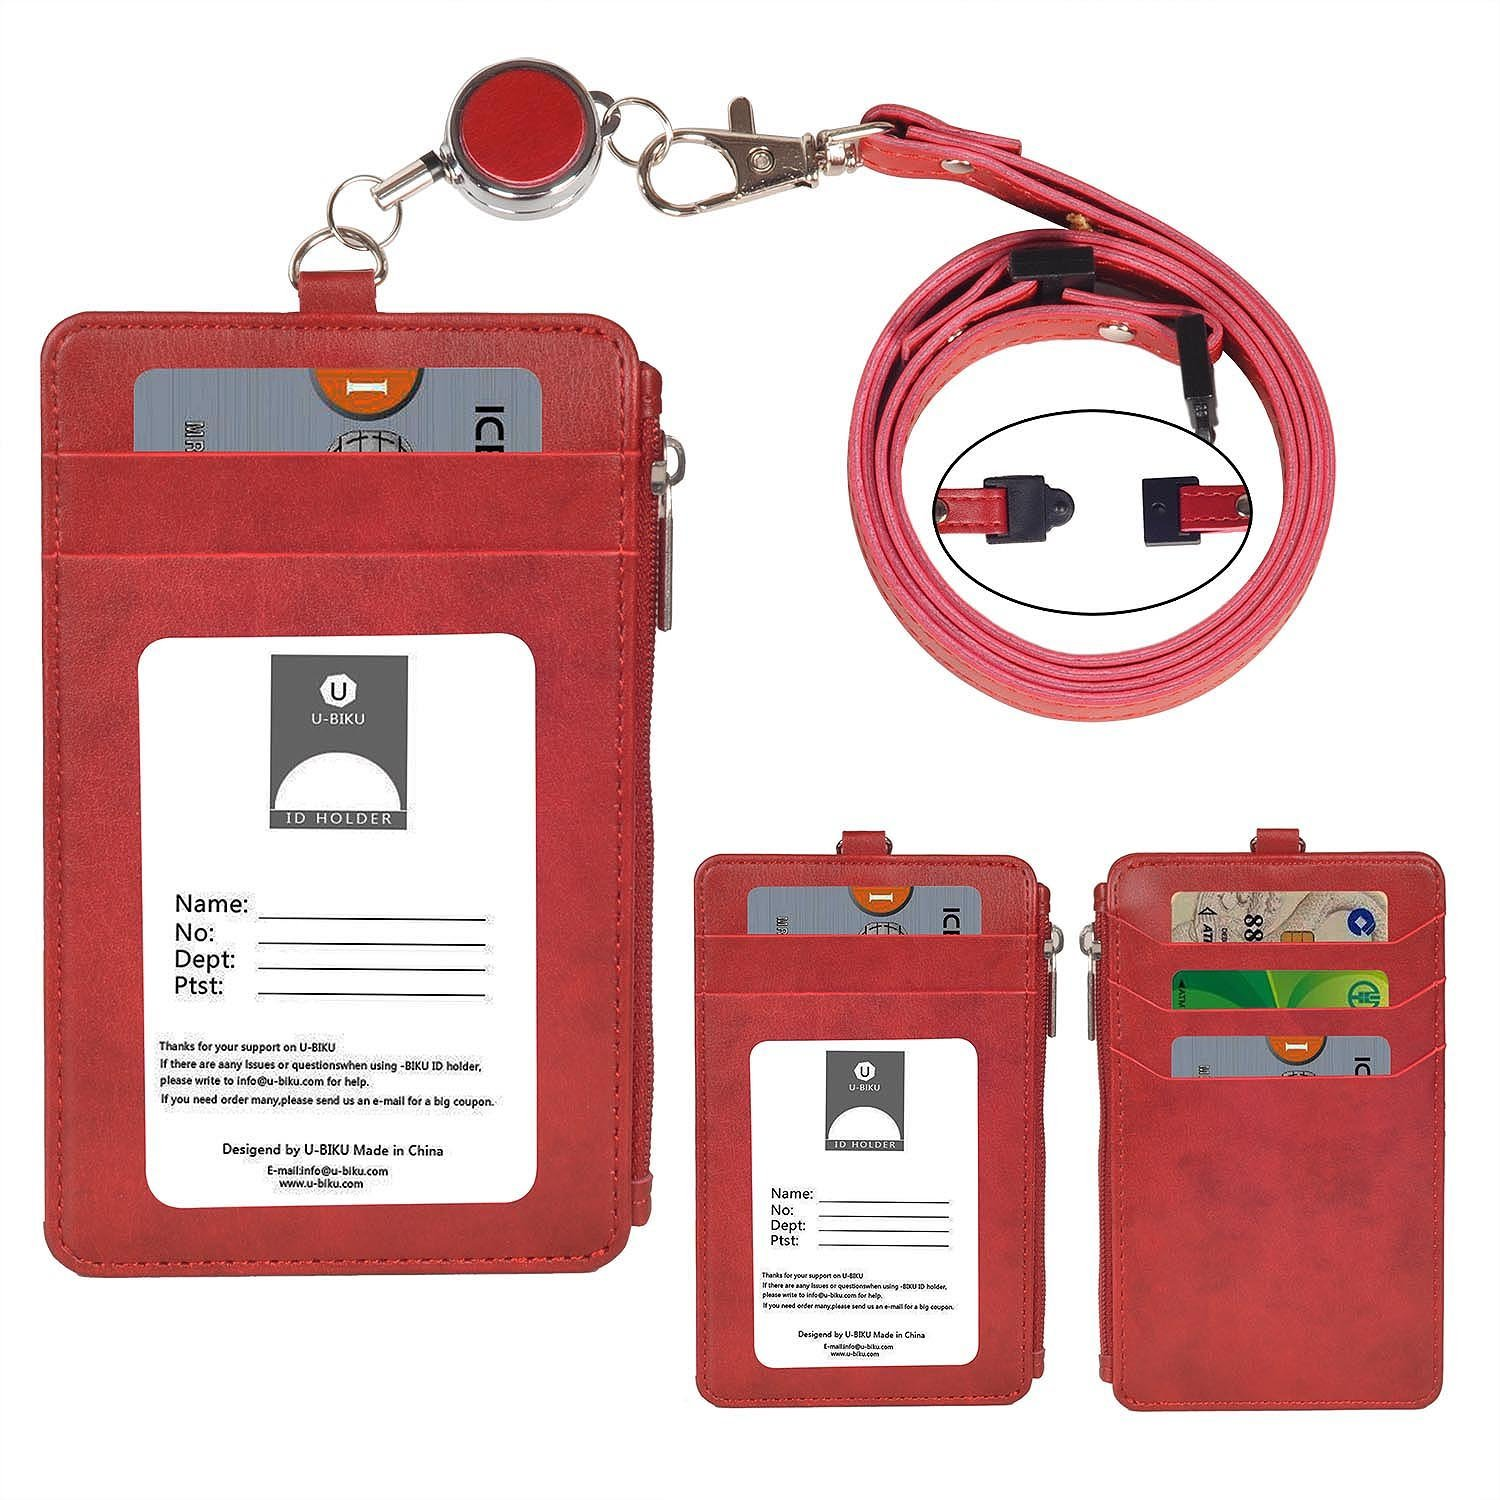 ID Card Holder Wallet, U-BIKU PU Leather Badge Holder with 1 ID Window, 5 Card Slot and Side Zipper, 1PC Retractable Reel,1PC Neck Lanyard and 1PC Wrist Strap (Red)